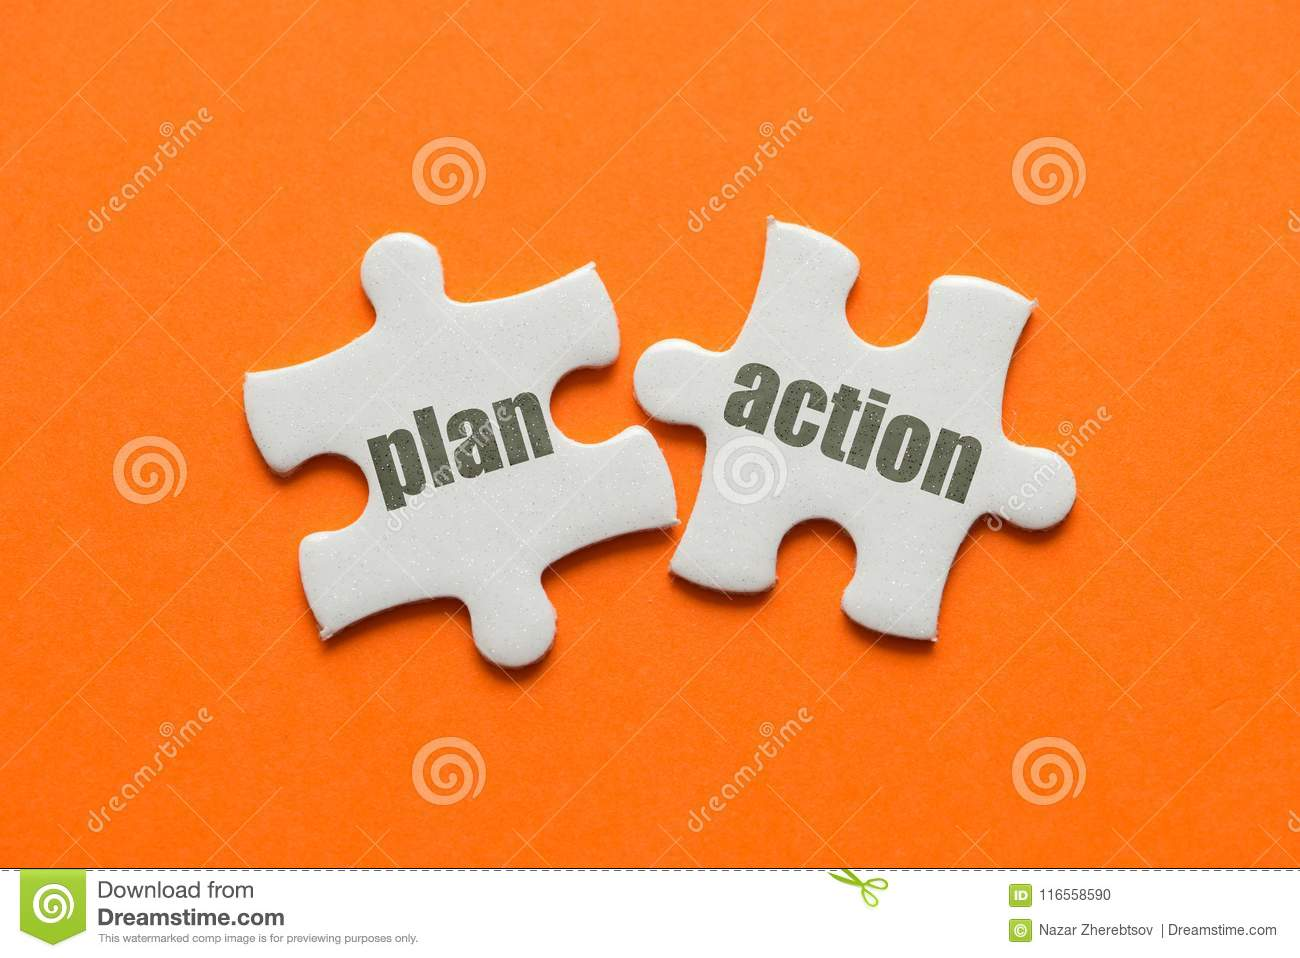 The word Plan Action on two matching puzzle on orange background